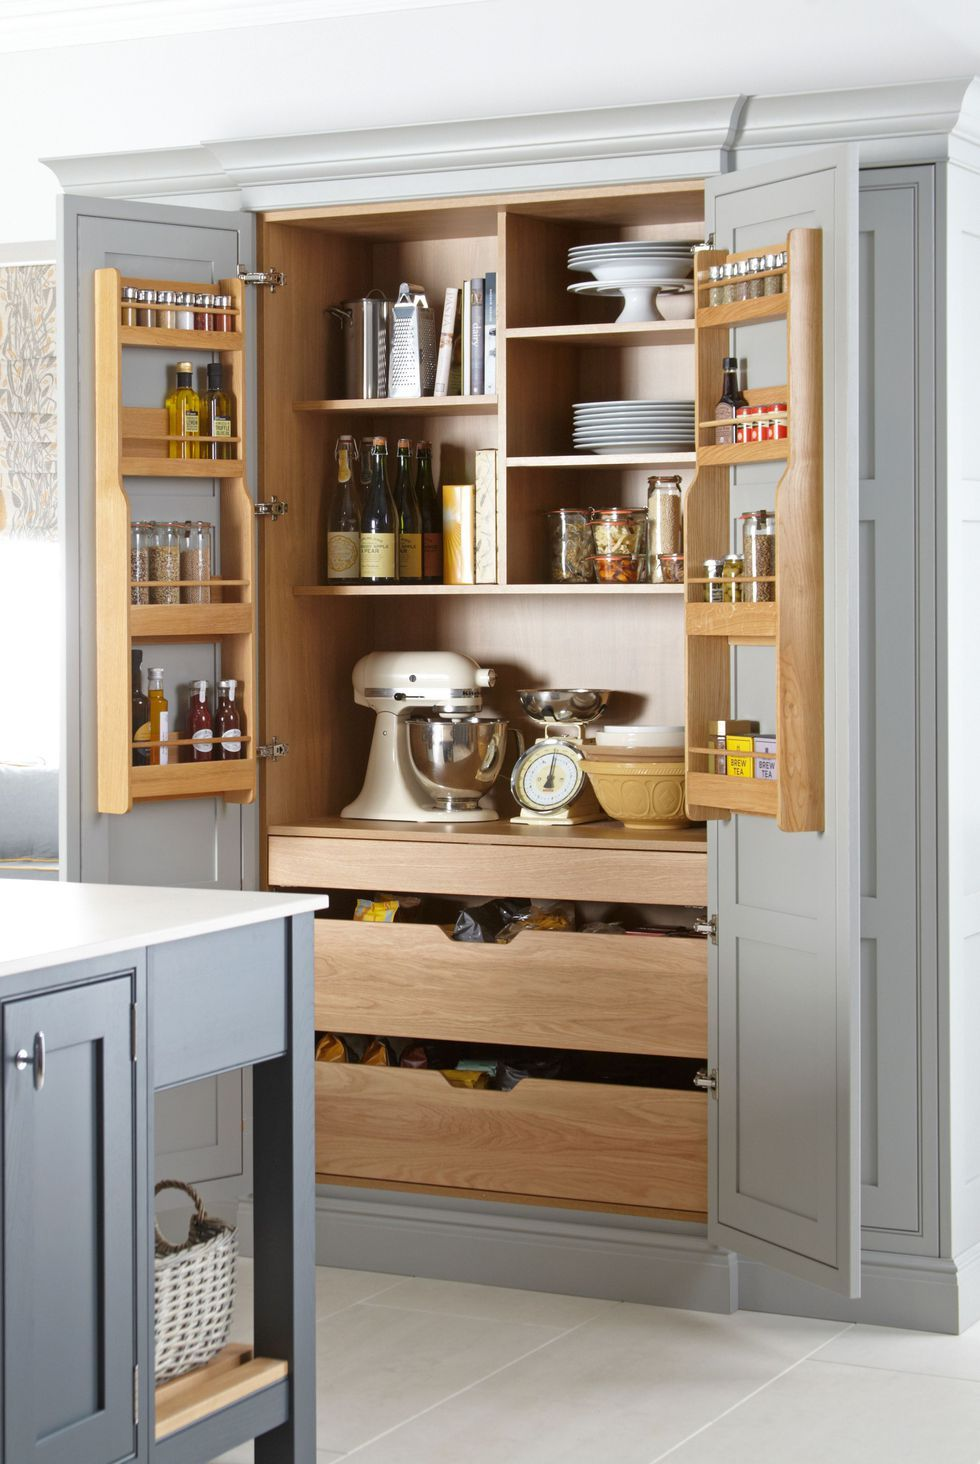 21 stylish and practical pantry ideas for your kit